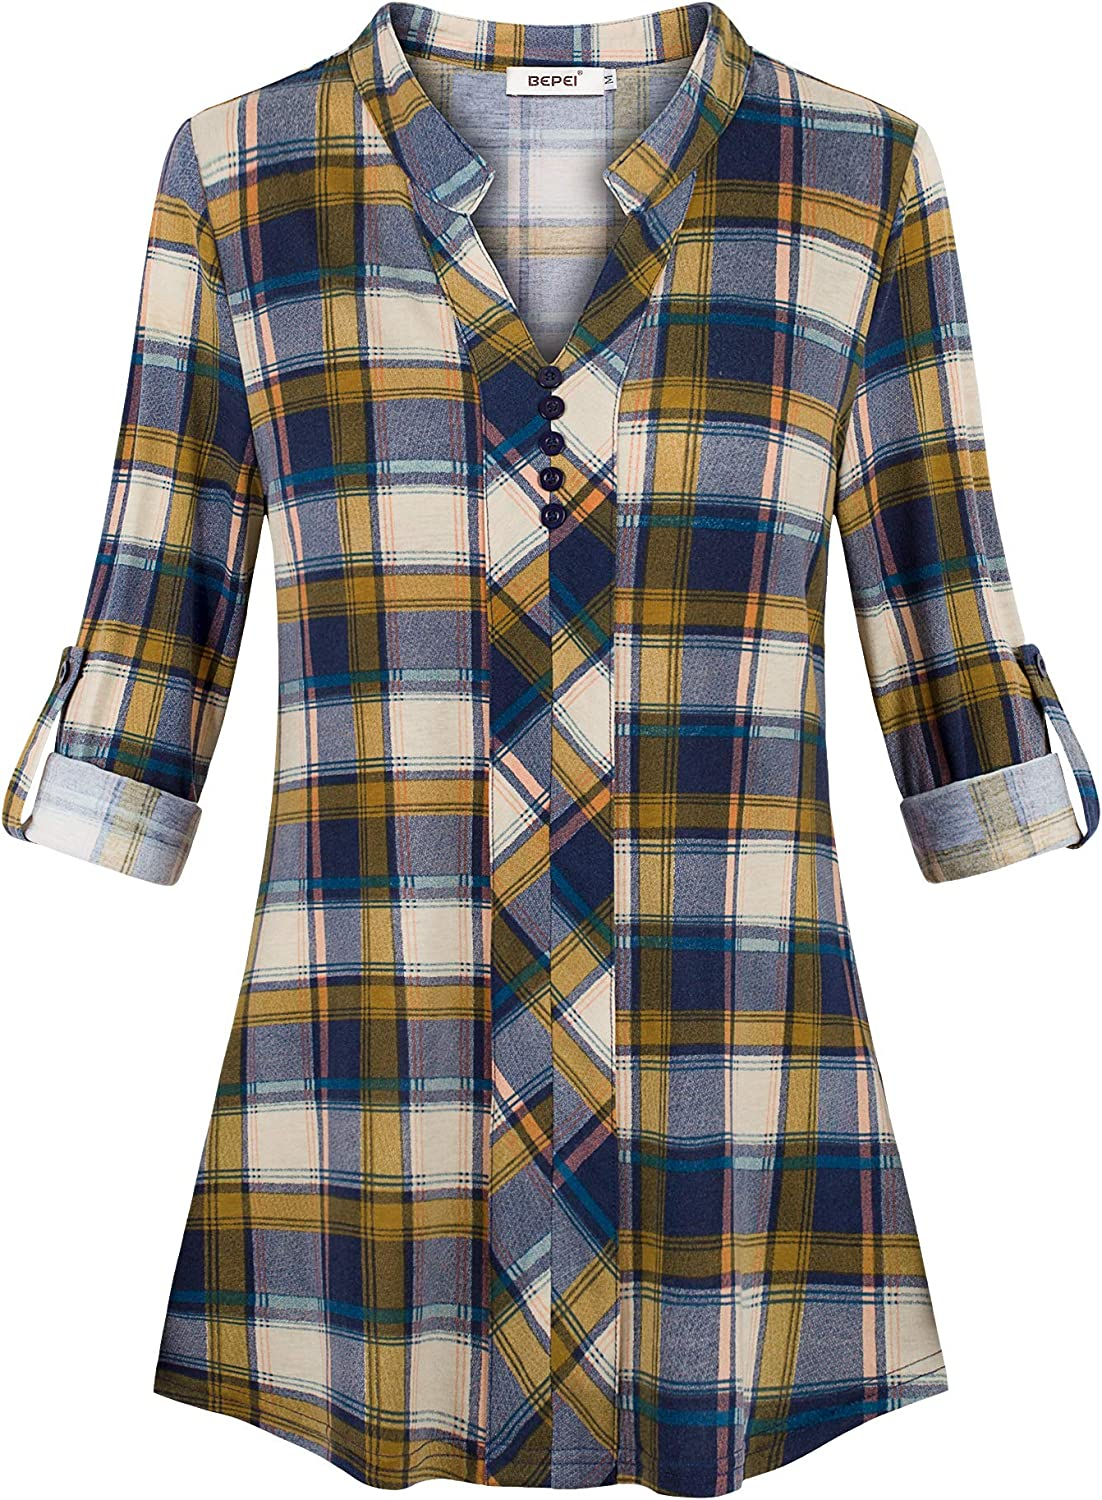 BEPEI Womens Roll-up 3/4 Long Sleeve Plaid Shirts Henley V Neck Casual Tunic Top: Clothing